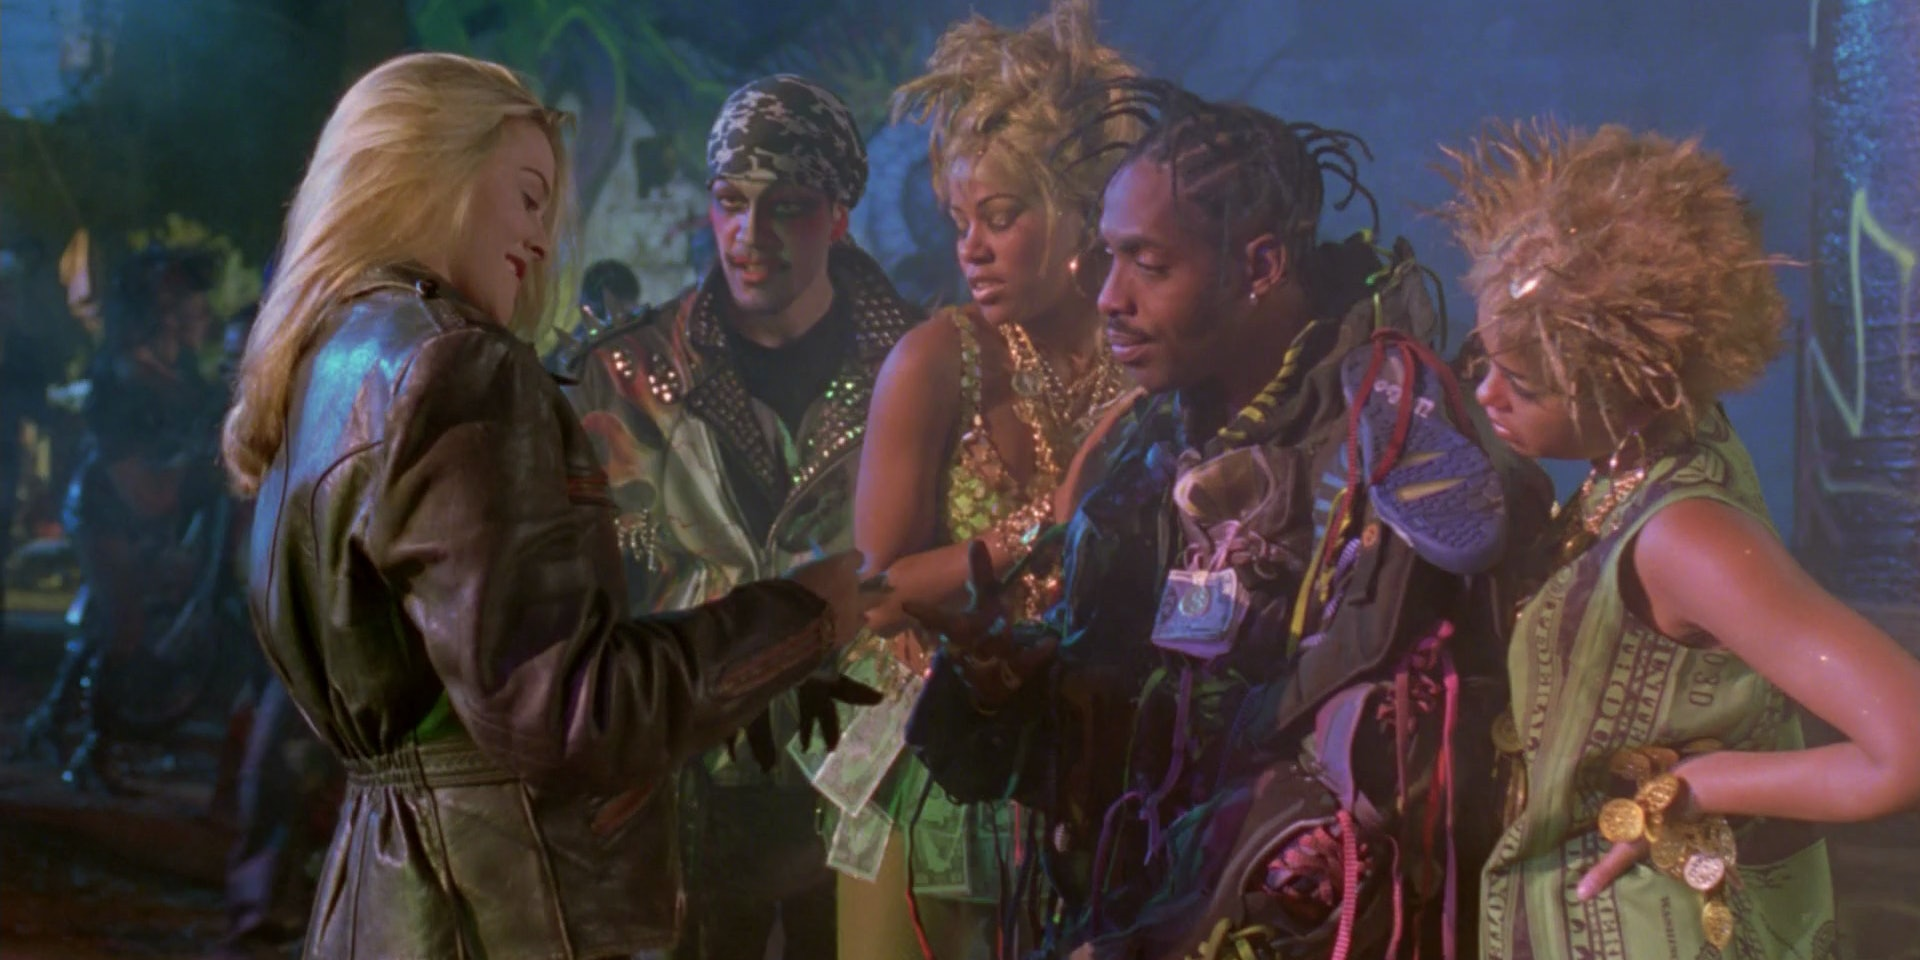 Lost 'Batman' Movie Would've Paired Coolio's Scarecrow With Harley